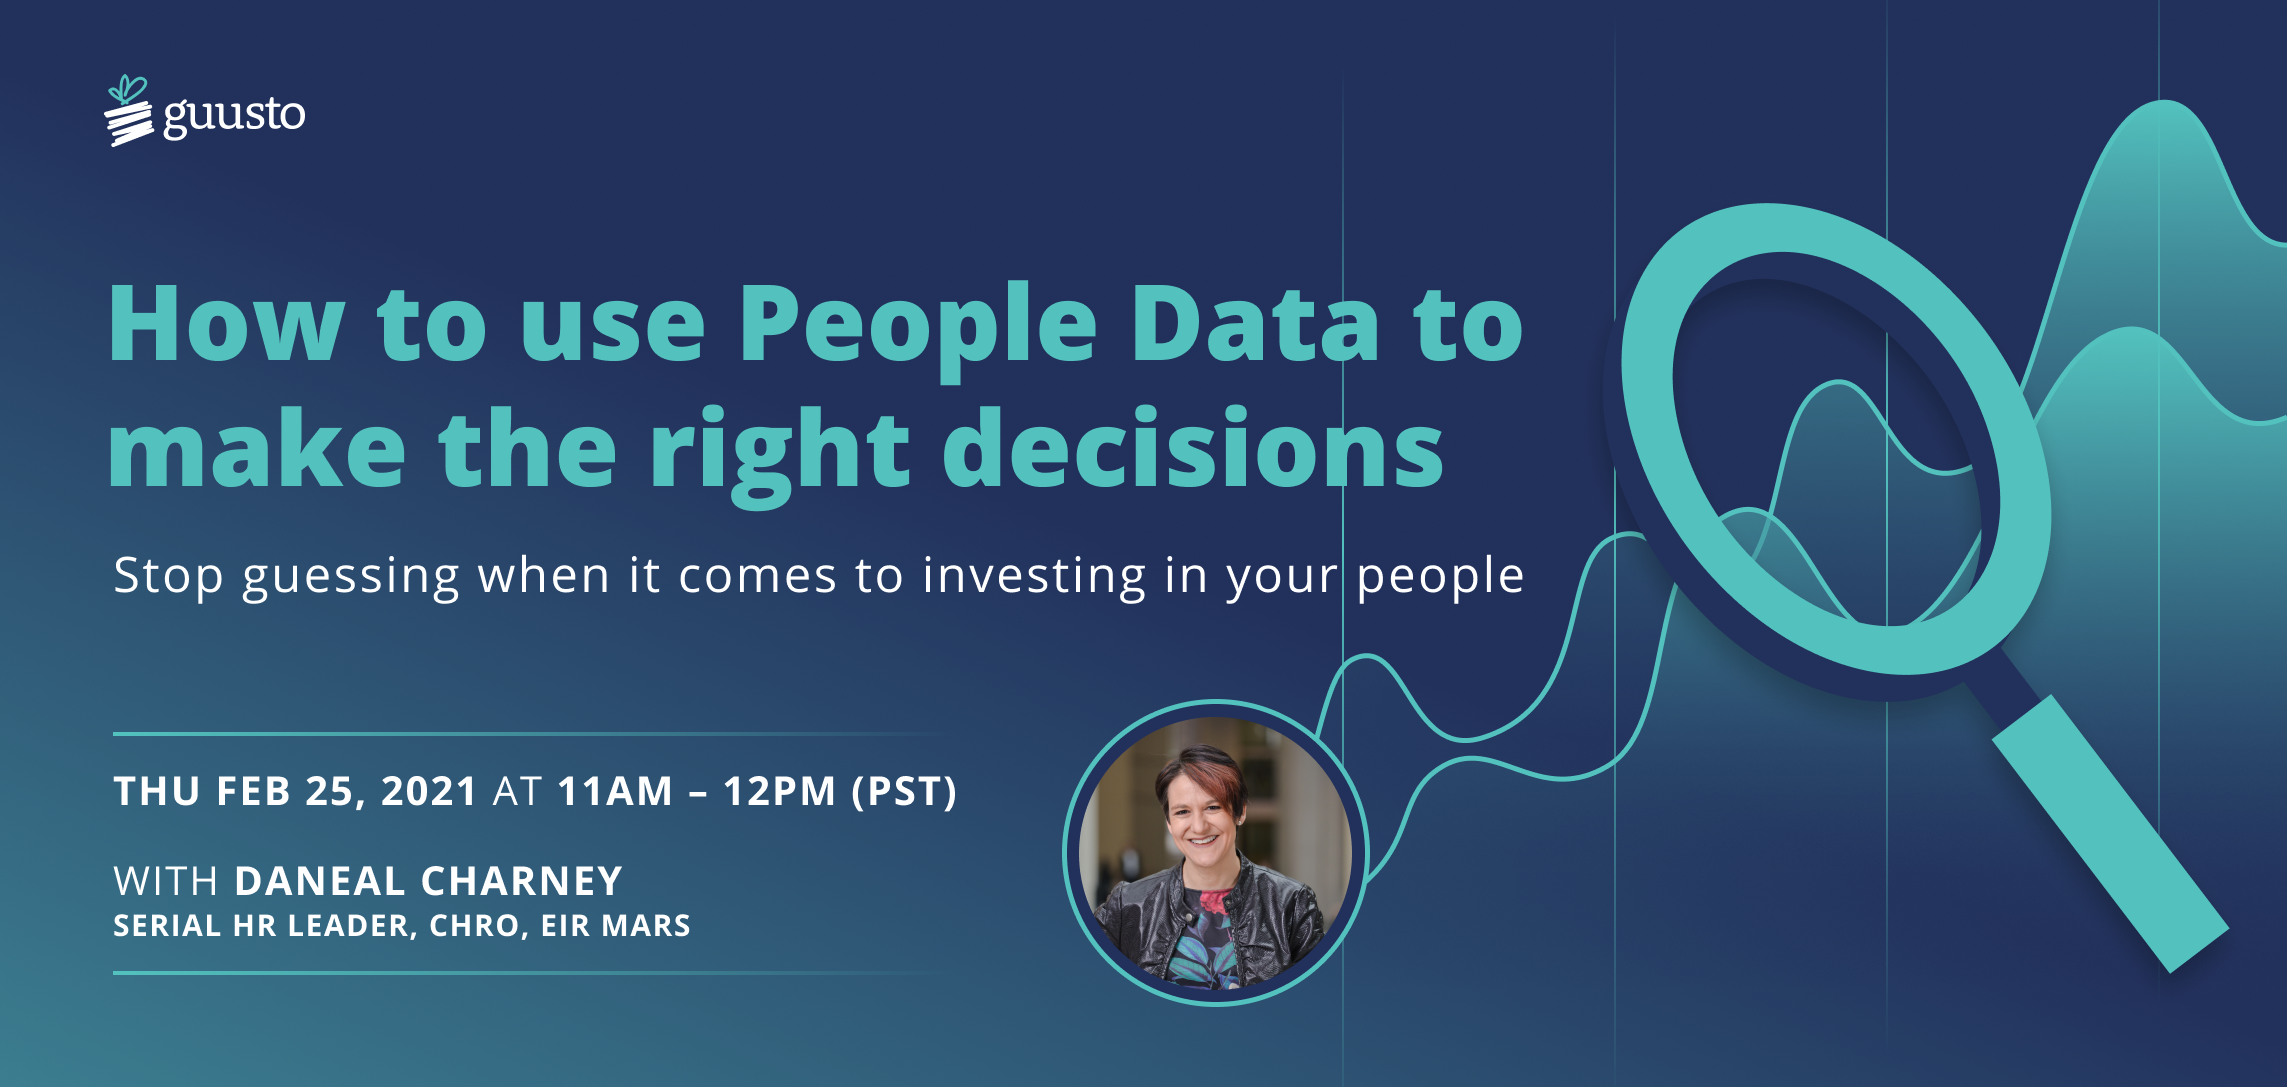 How to use People Data to make the Right Decisions